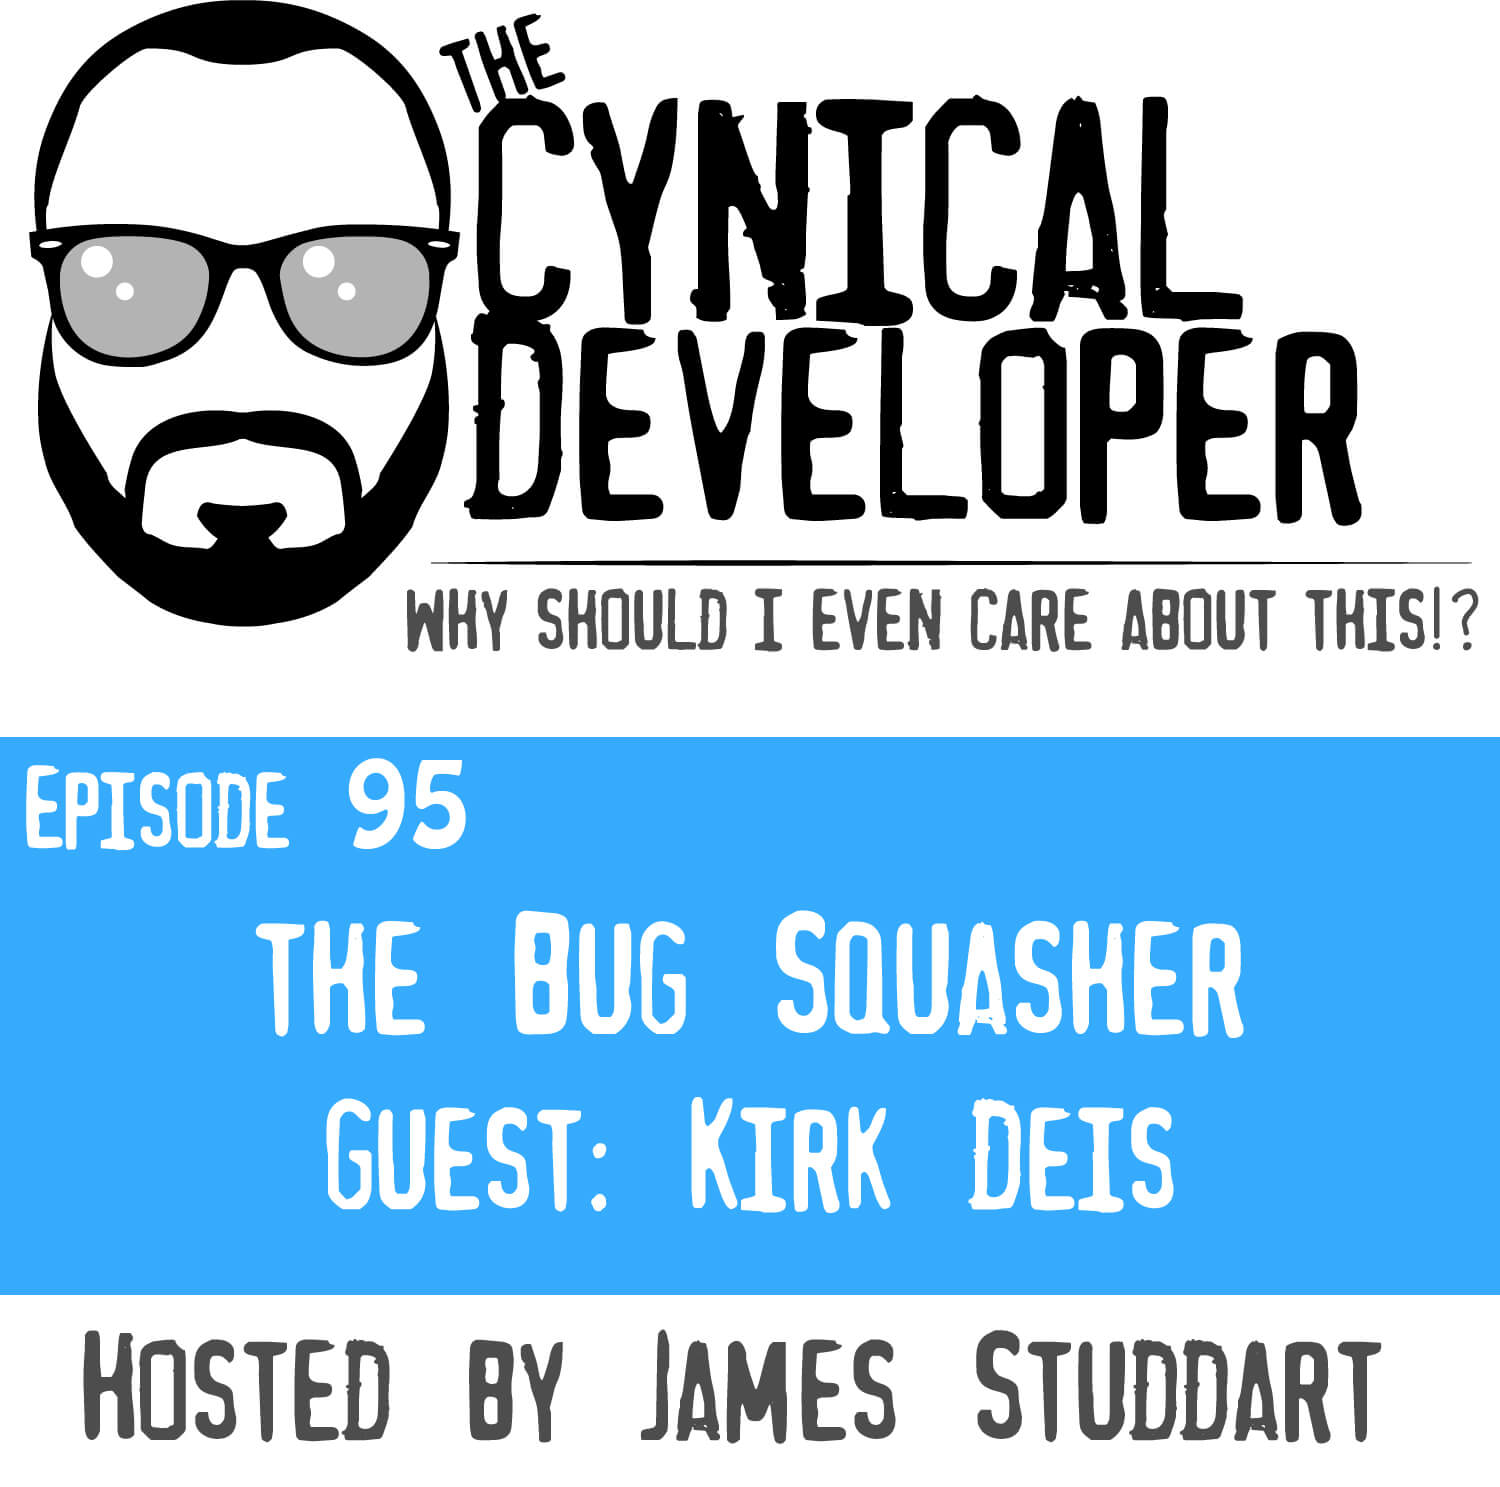 Episode 95 - The Bug Squasher